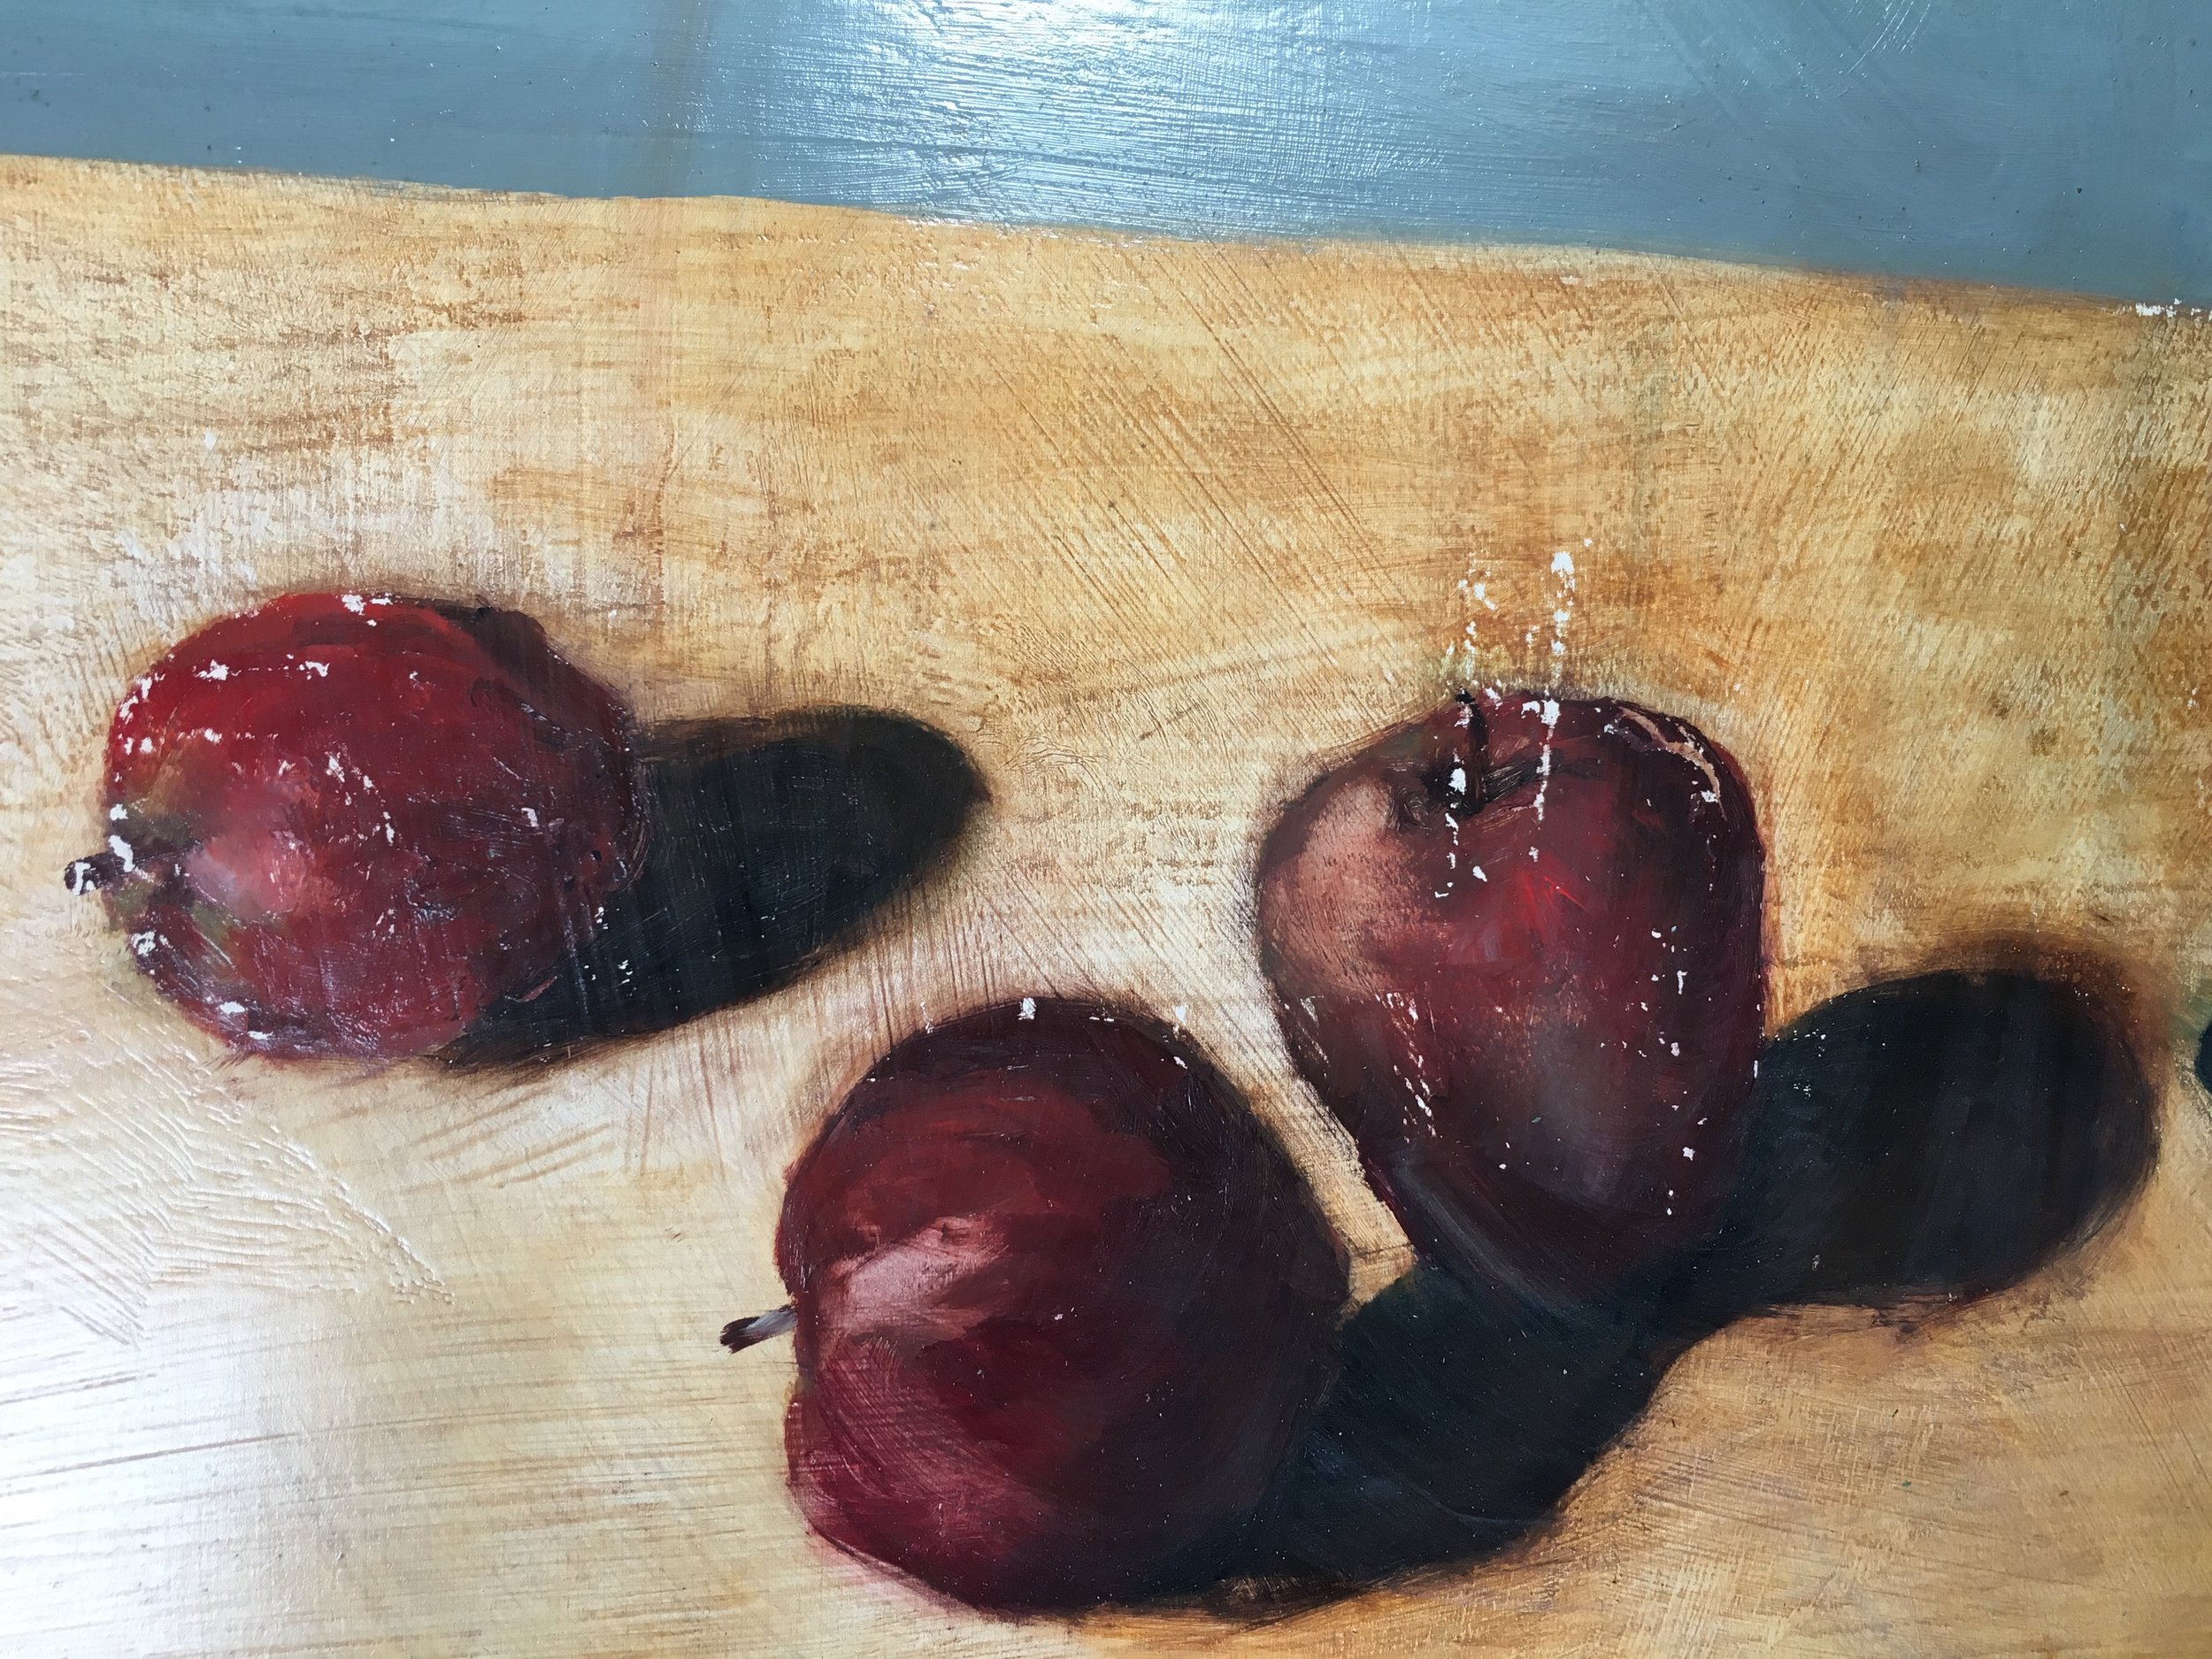 """detail from """"Apples, Wilted Sunflowers"""". 2000. Oil on Panel. 36 x 24 inches."""